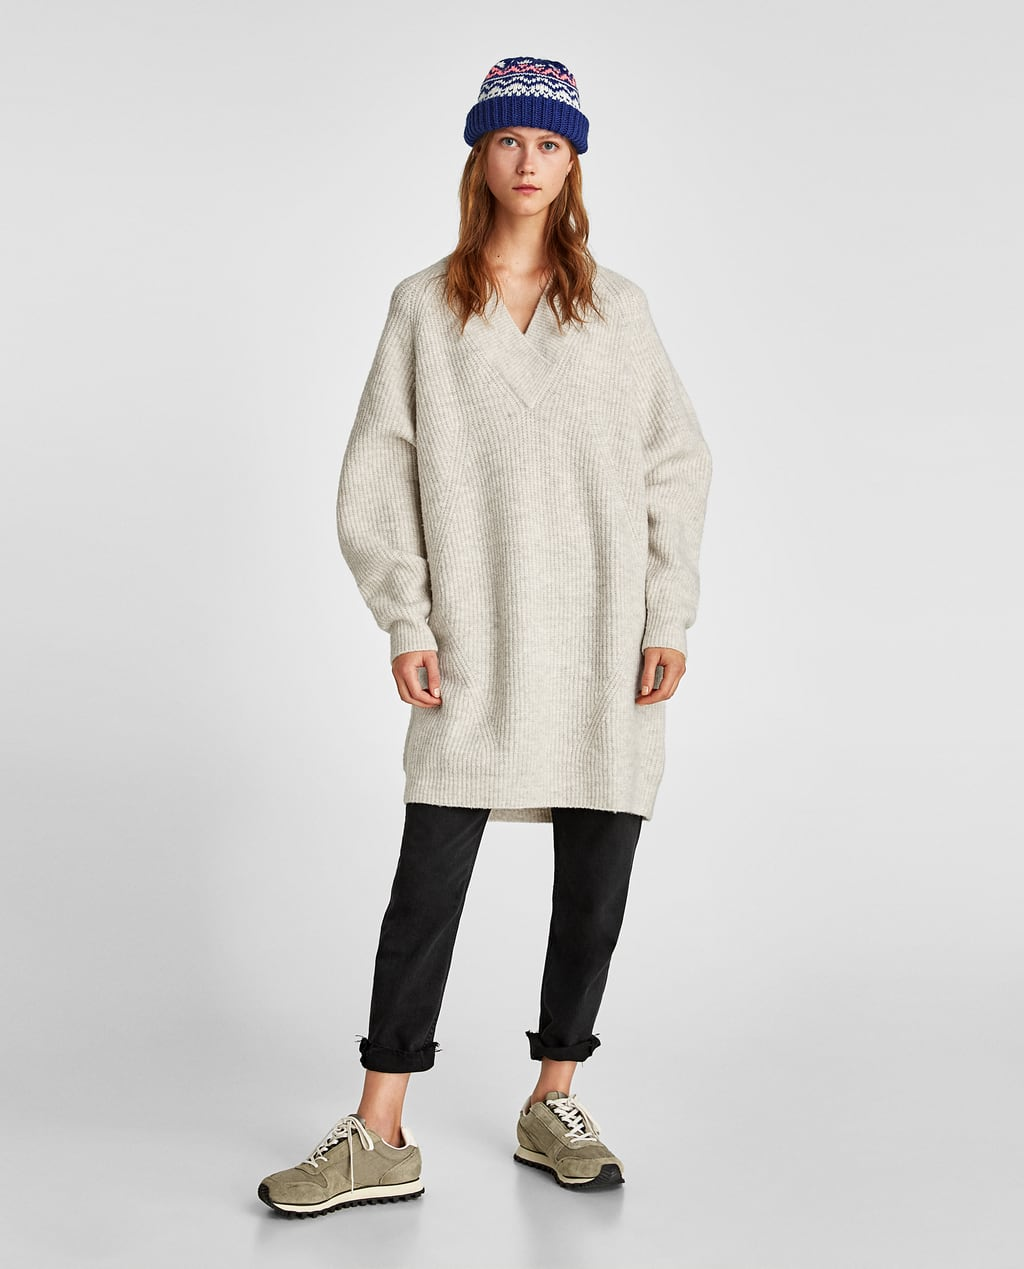 OVERSIZED SWEATER DRESS - Sweaters-KNITWEAR-WOMAN-SALE | ZARA Mexico